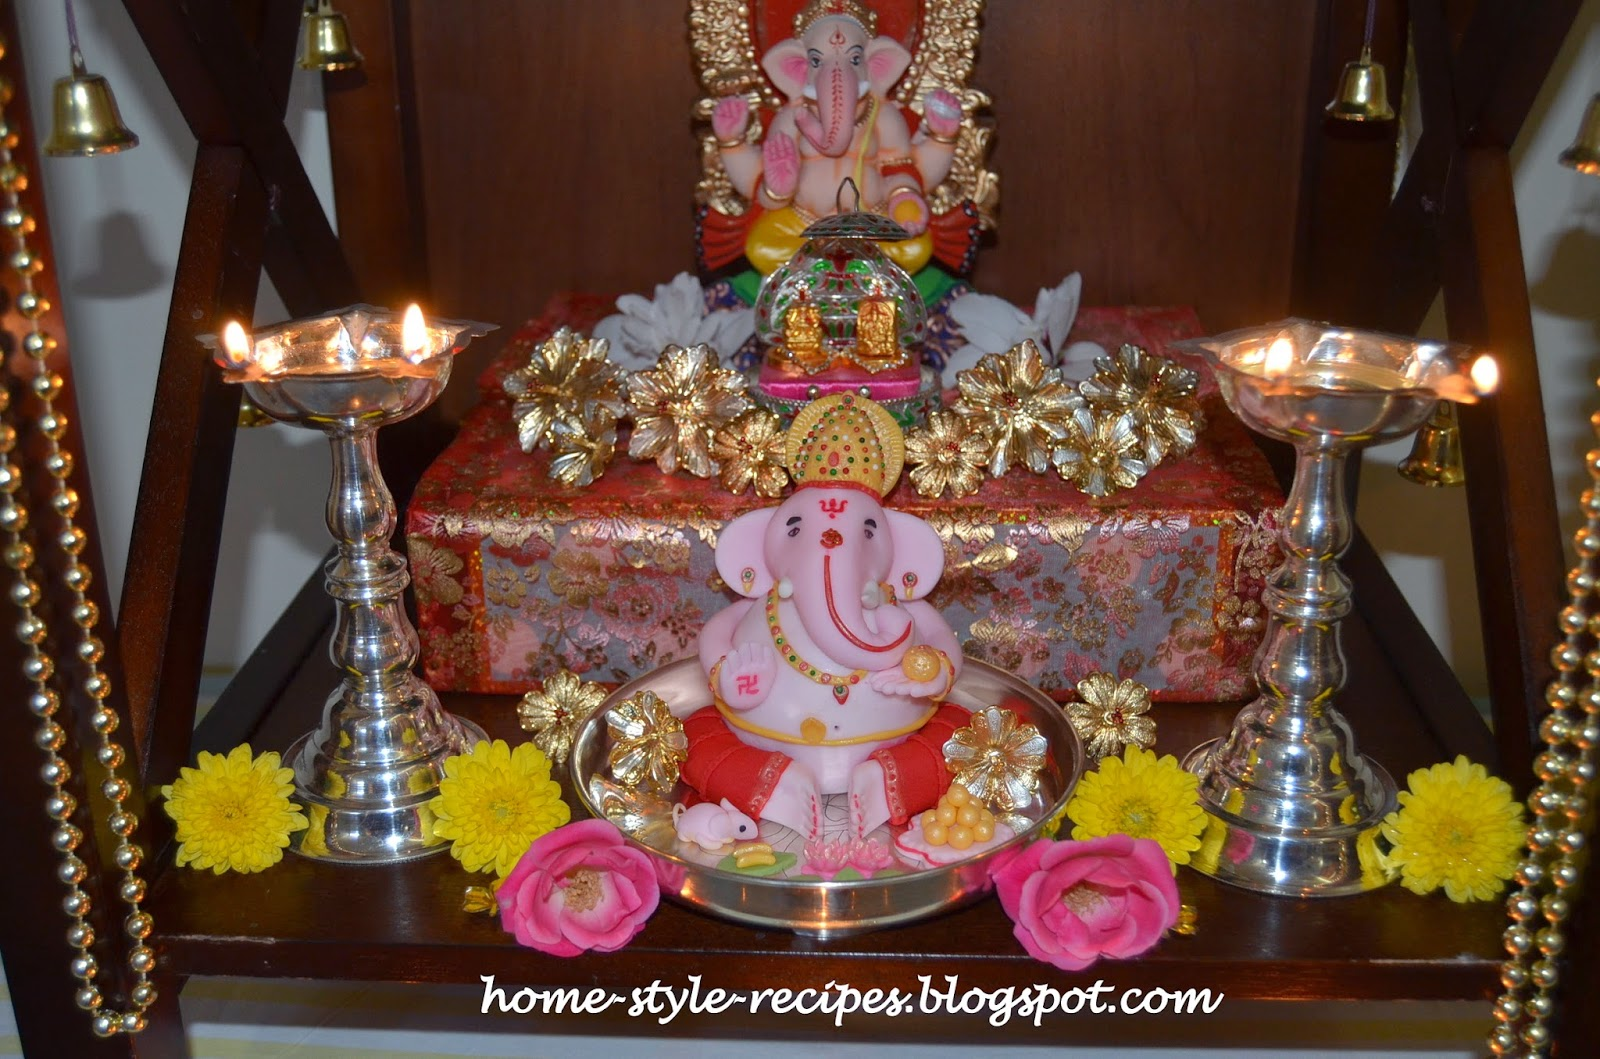 Share a recipe happy ganesh chaturthi 2014 for Decorations for ganesh chaturthi at home